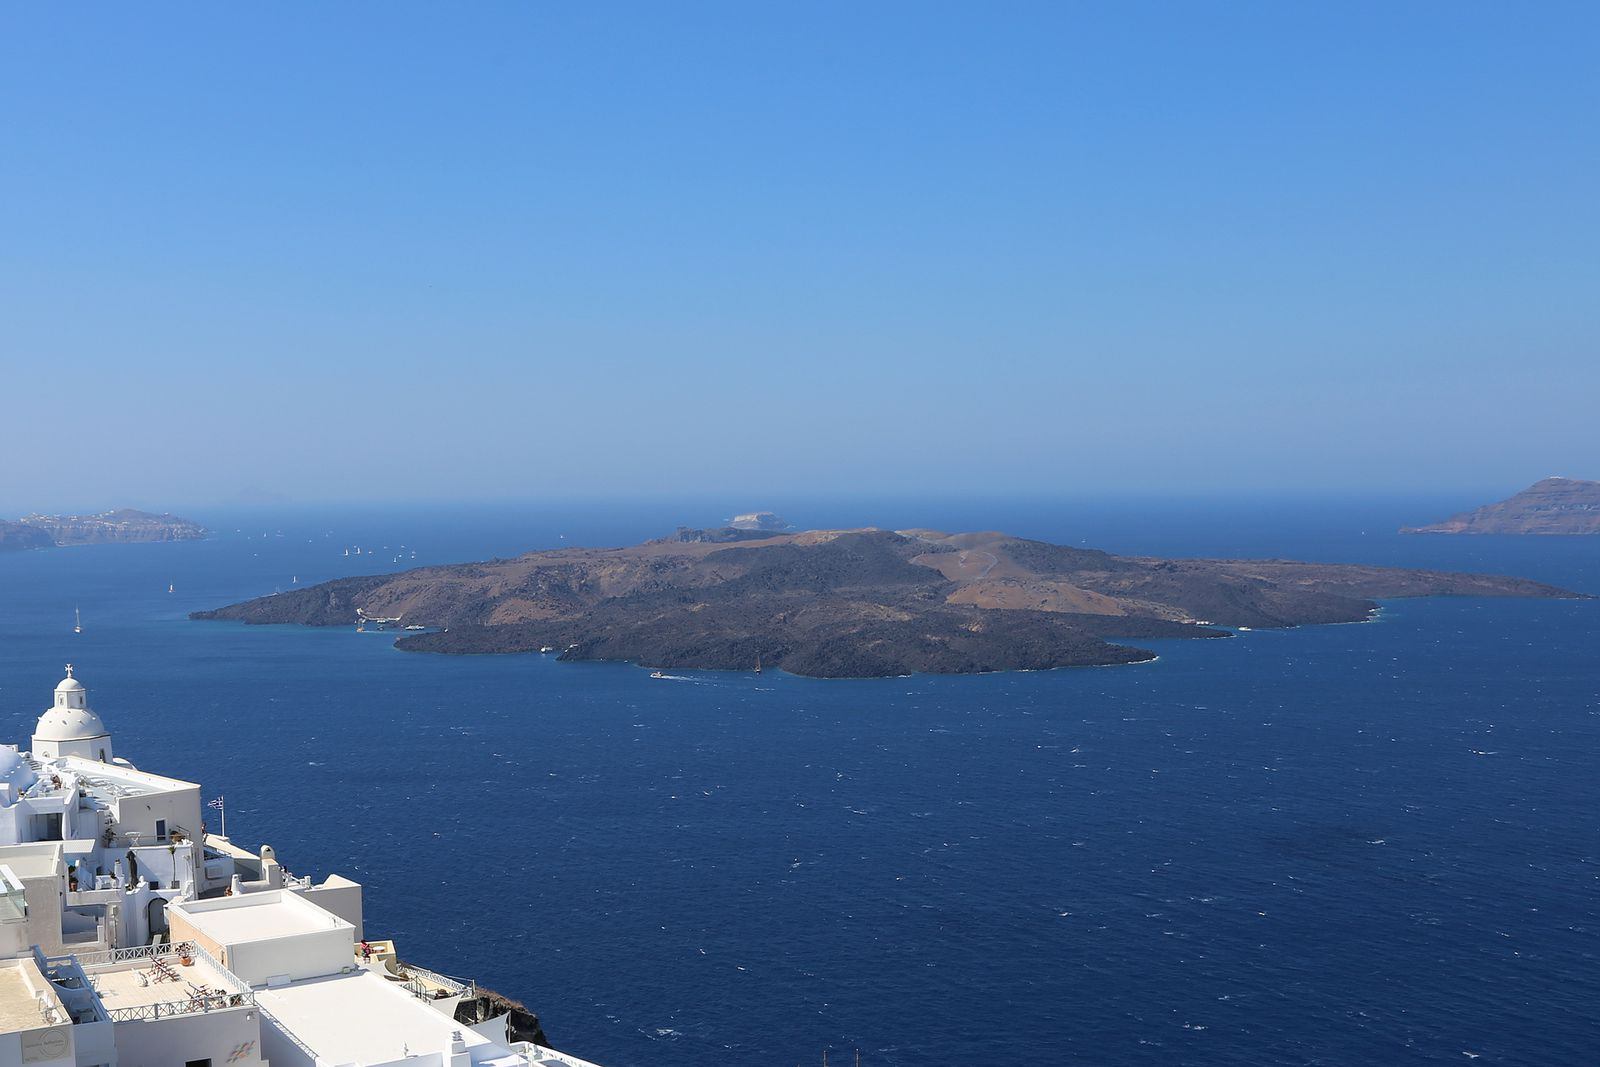 Santorini - Nea Kameni, seen from Thira - photo © Bernard Duyck 09.2019